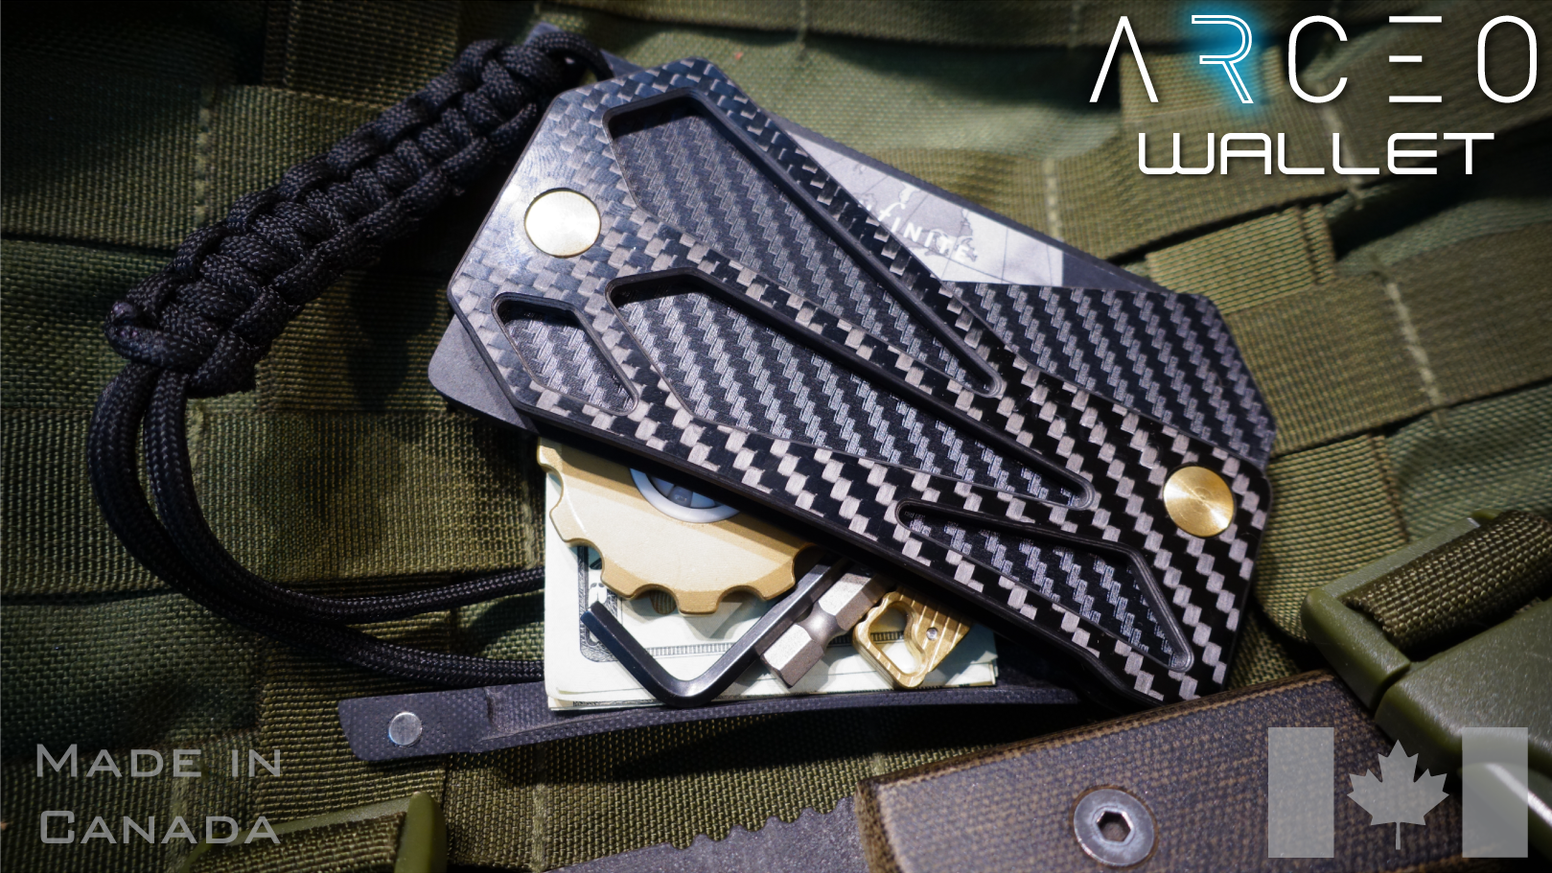 The ultimate rugged wallet combines advanced carbon fiber materials with a magnetically sealed case to protect your everyday carry.